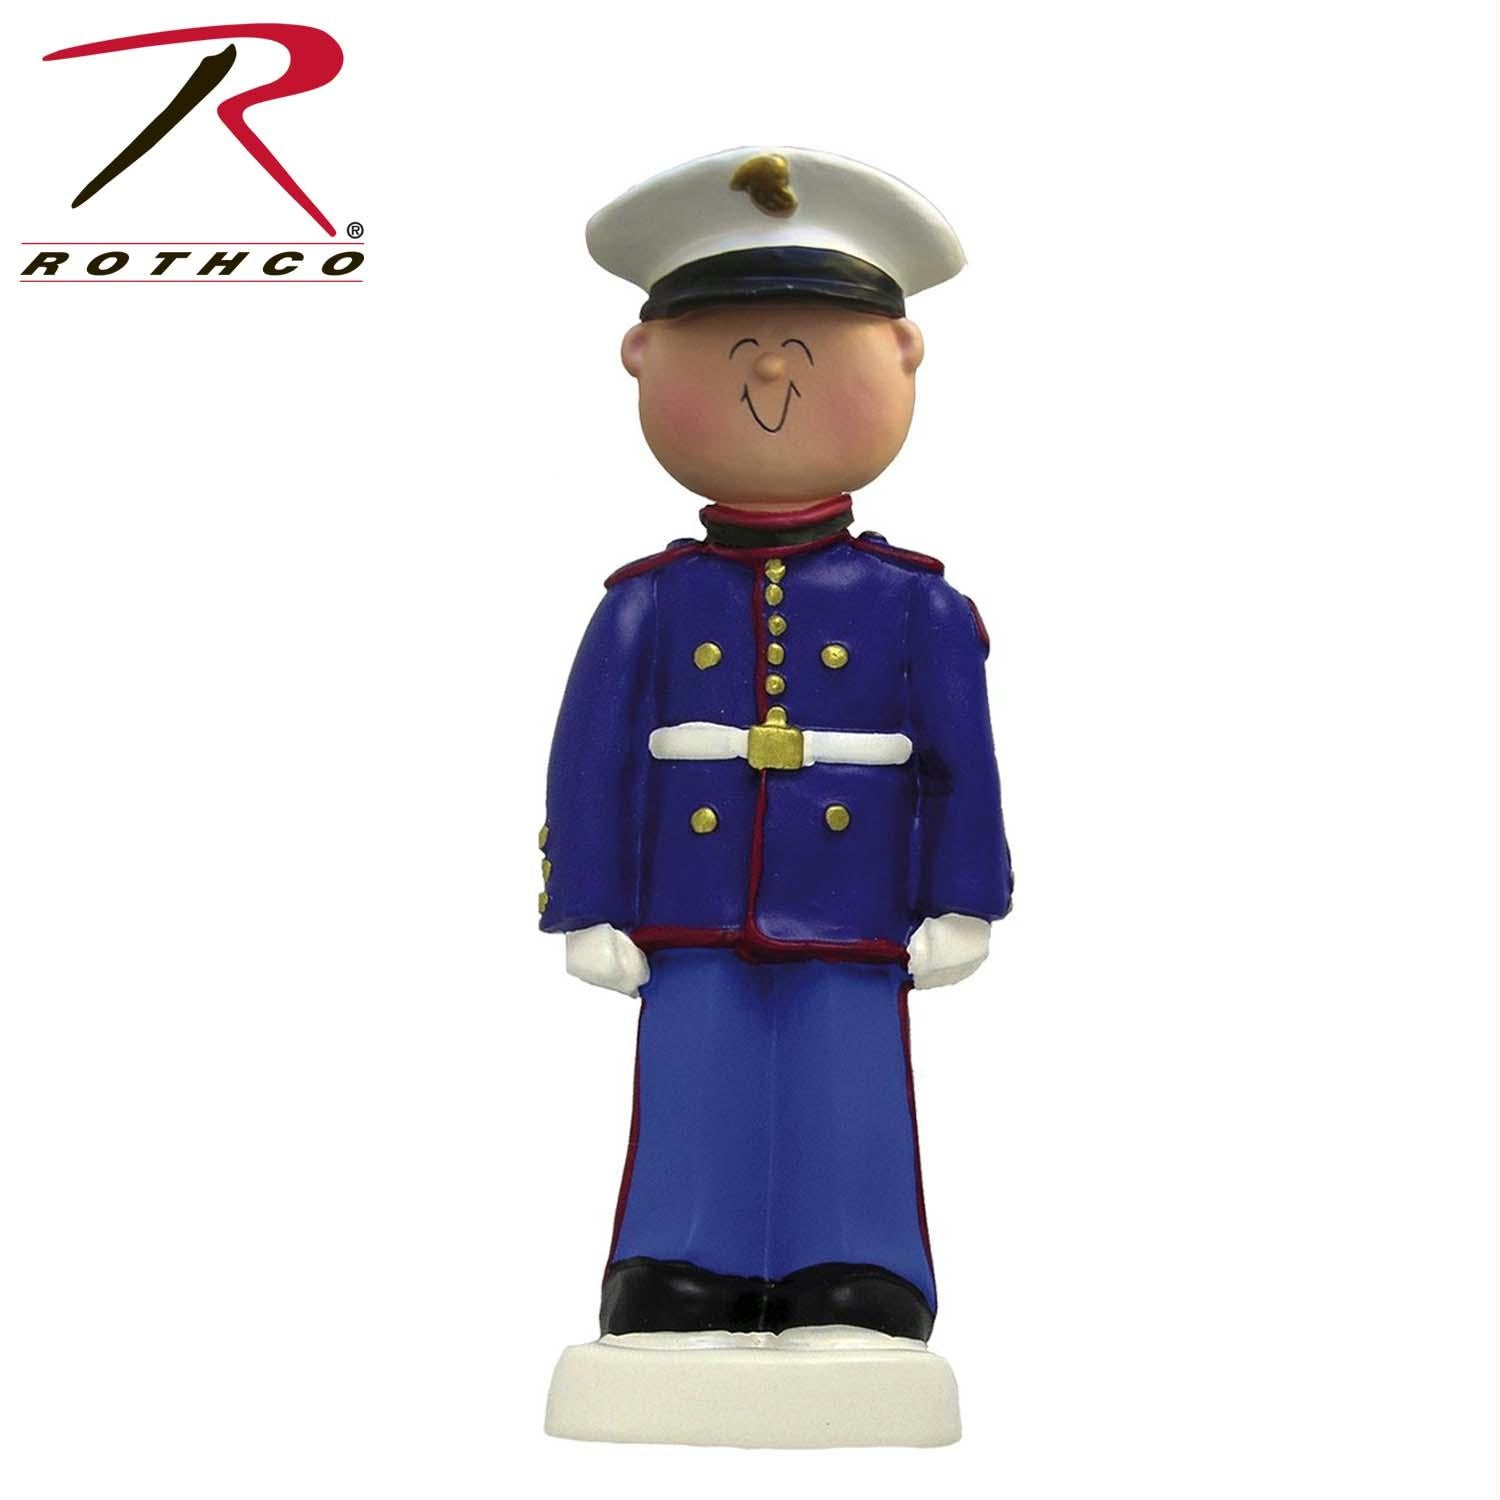 Rothco Military-Law Enforcement Ornaments - Marines